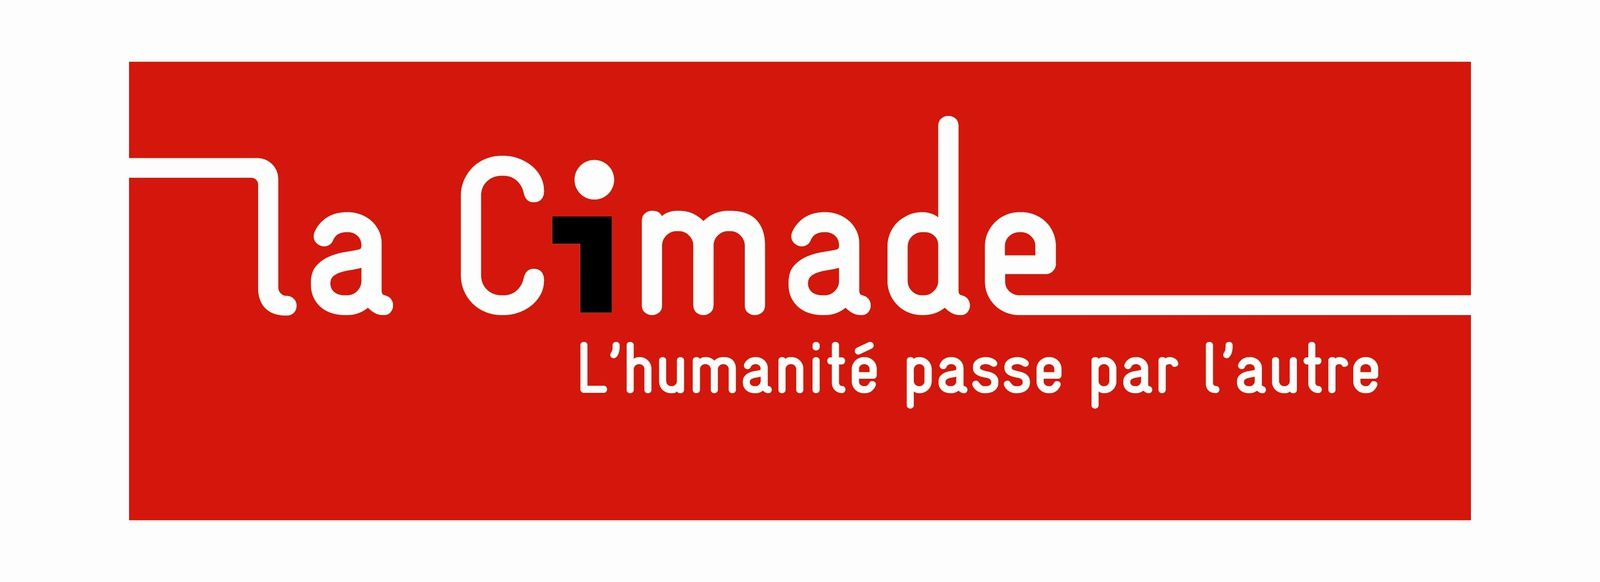 Associations solidaires – solutions efficaces